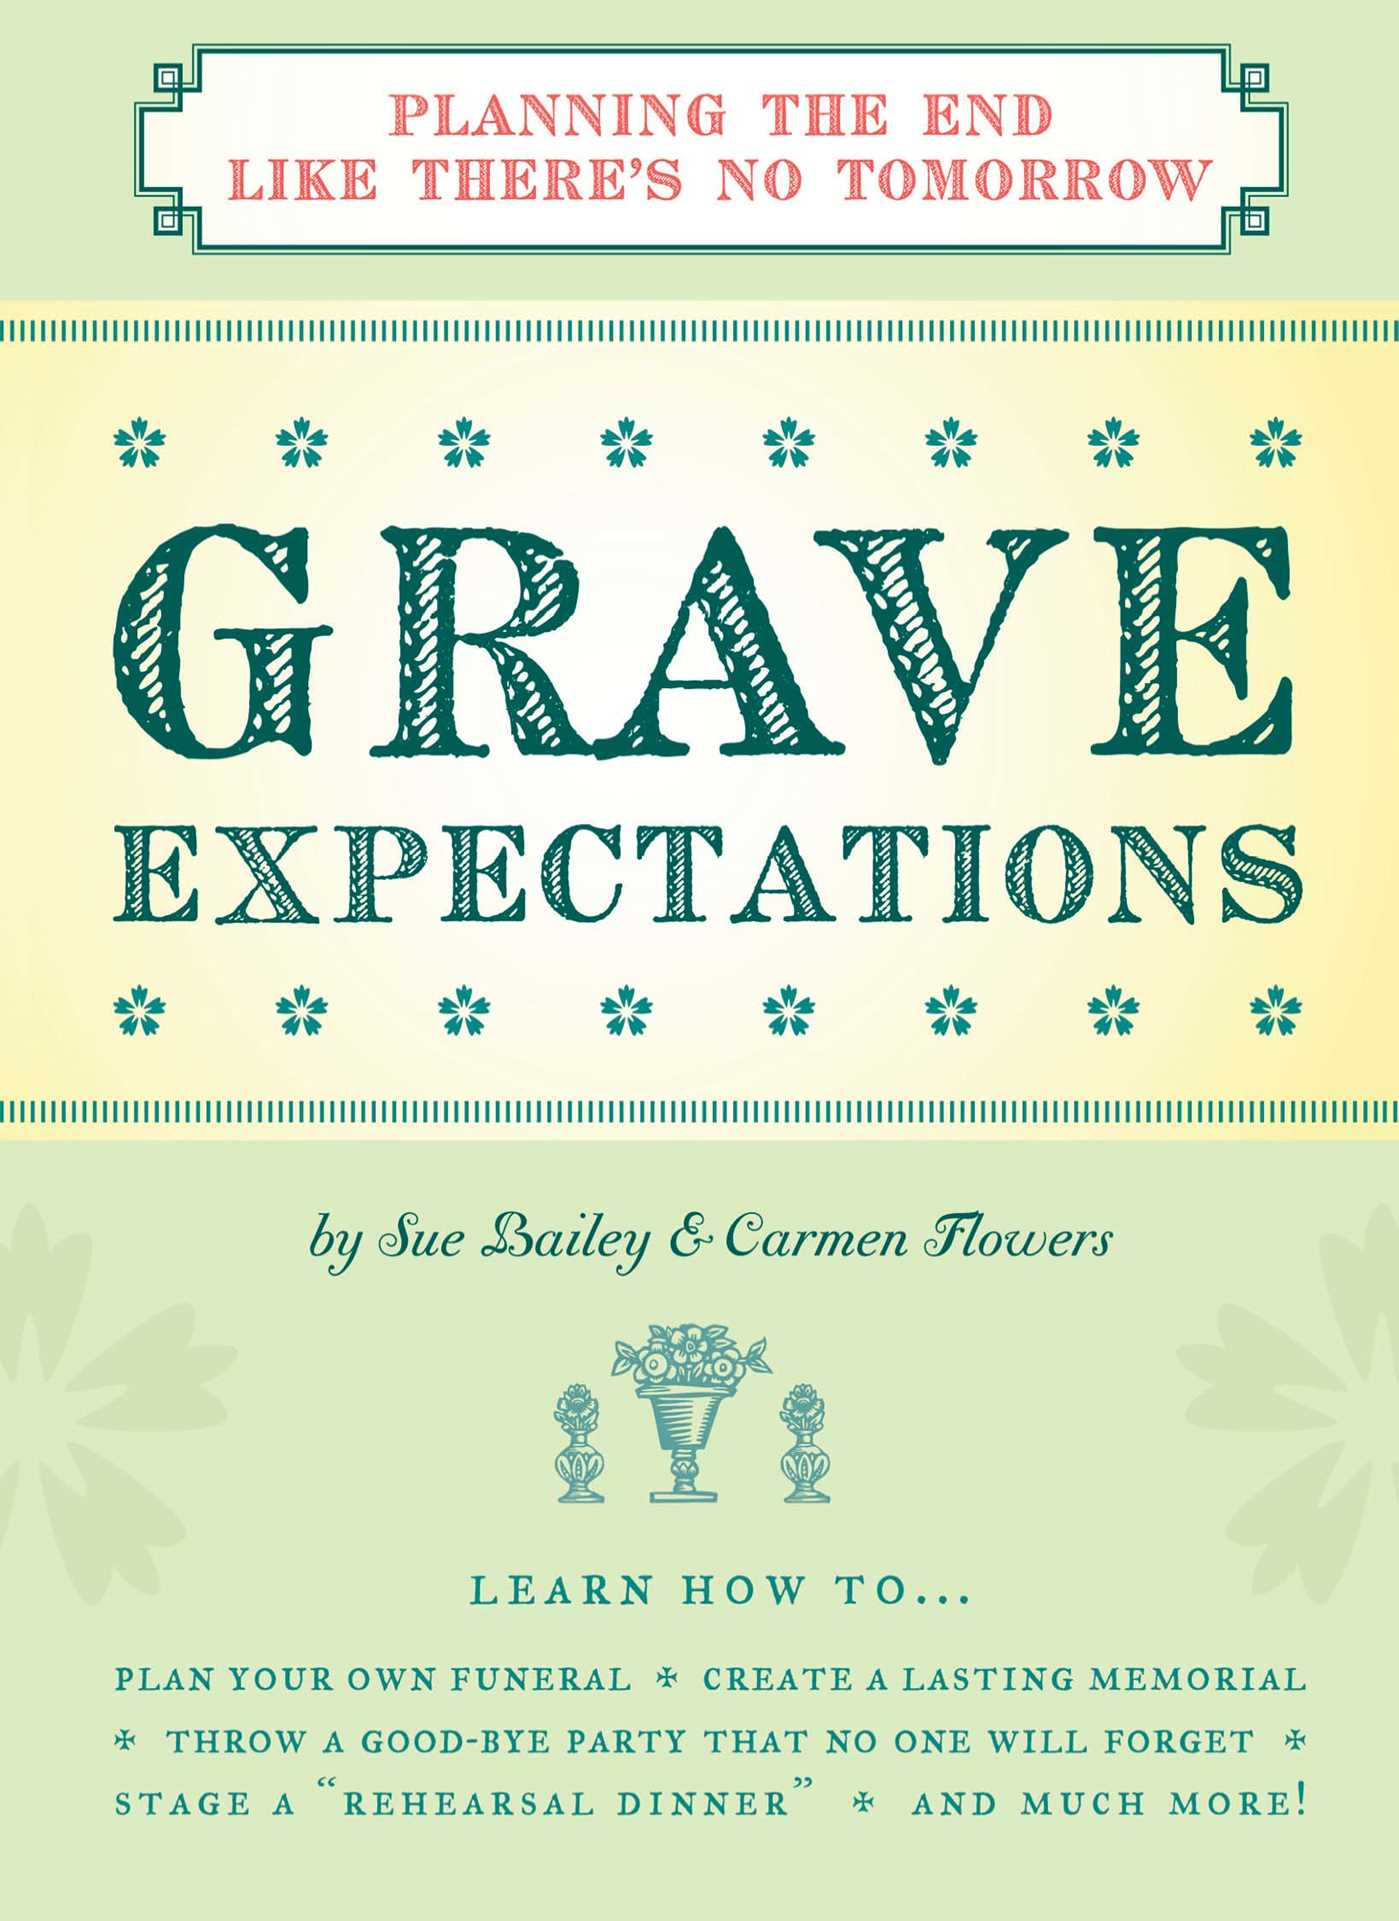 Grave-expectations-9781604330212_hr